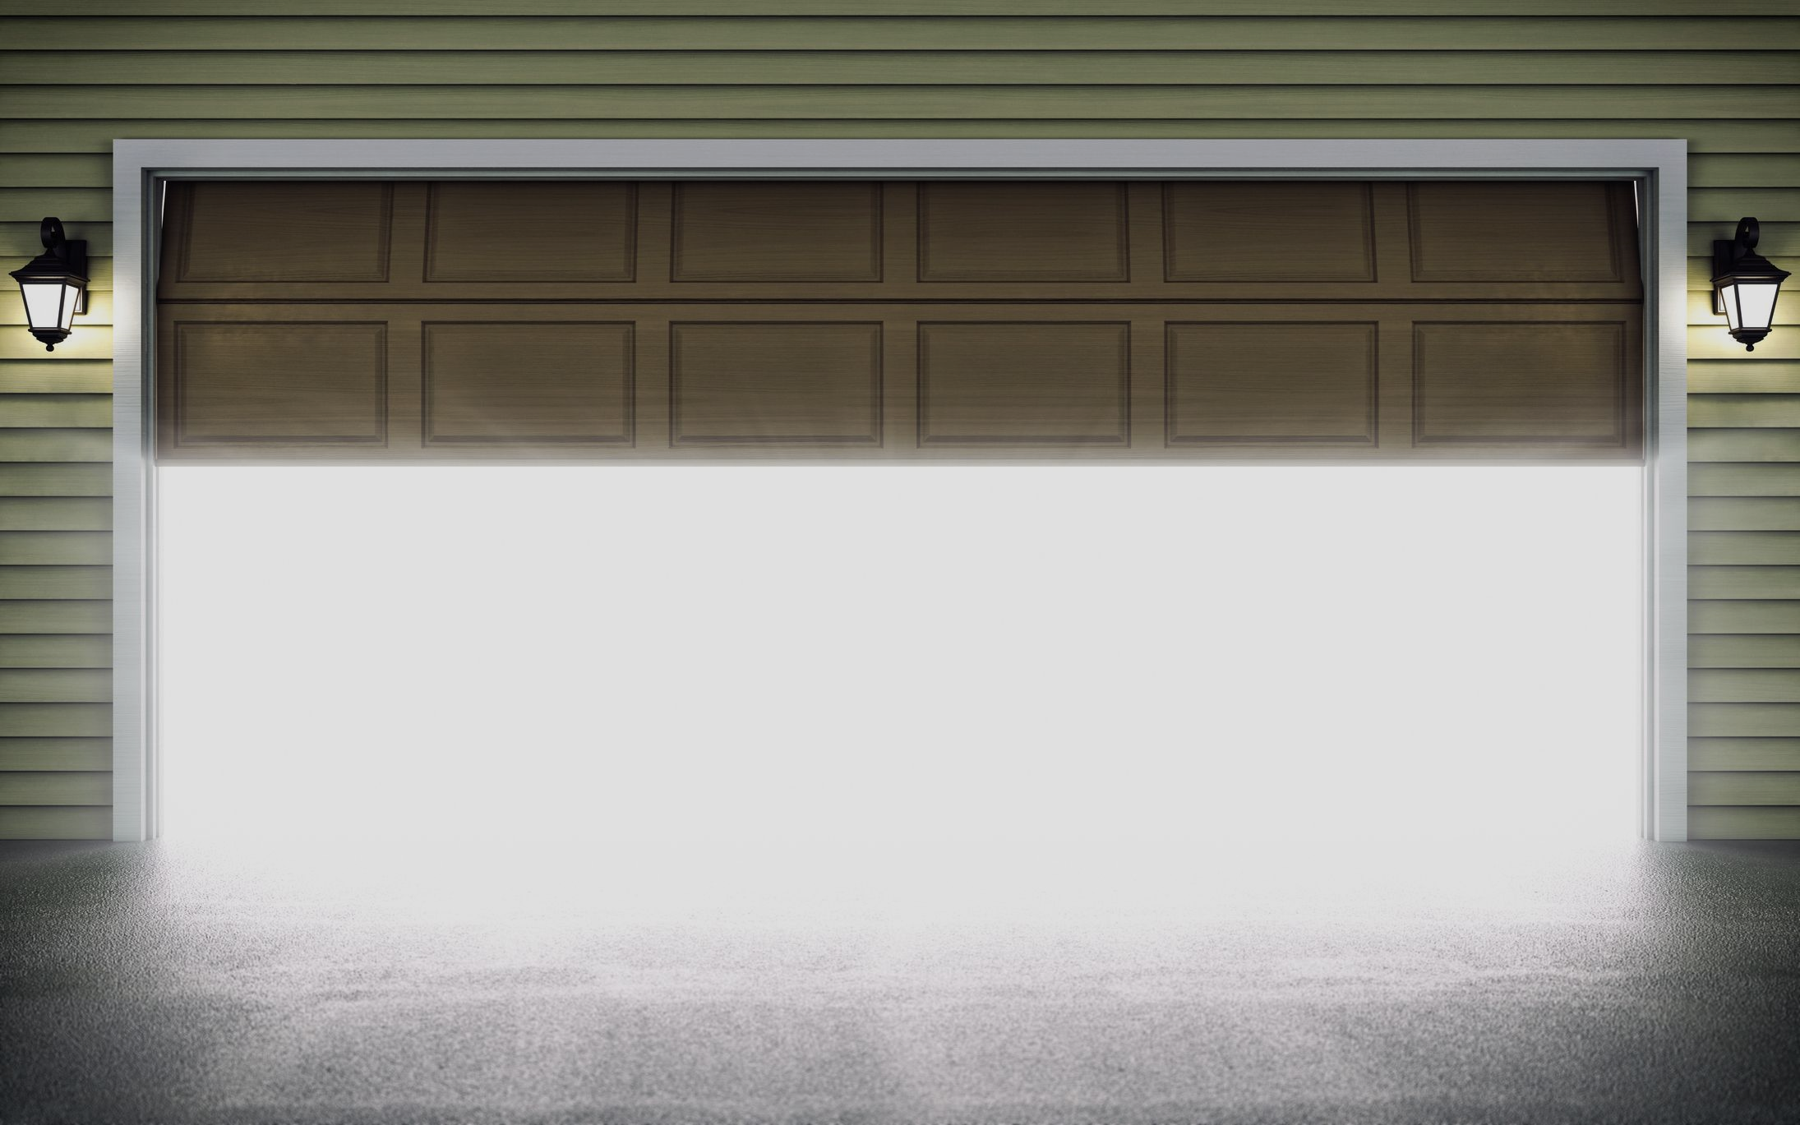 Aaa garage door repair sun prairie for Garage gate repair